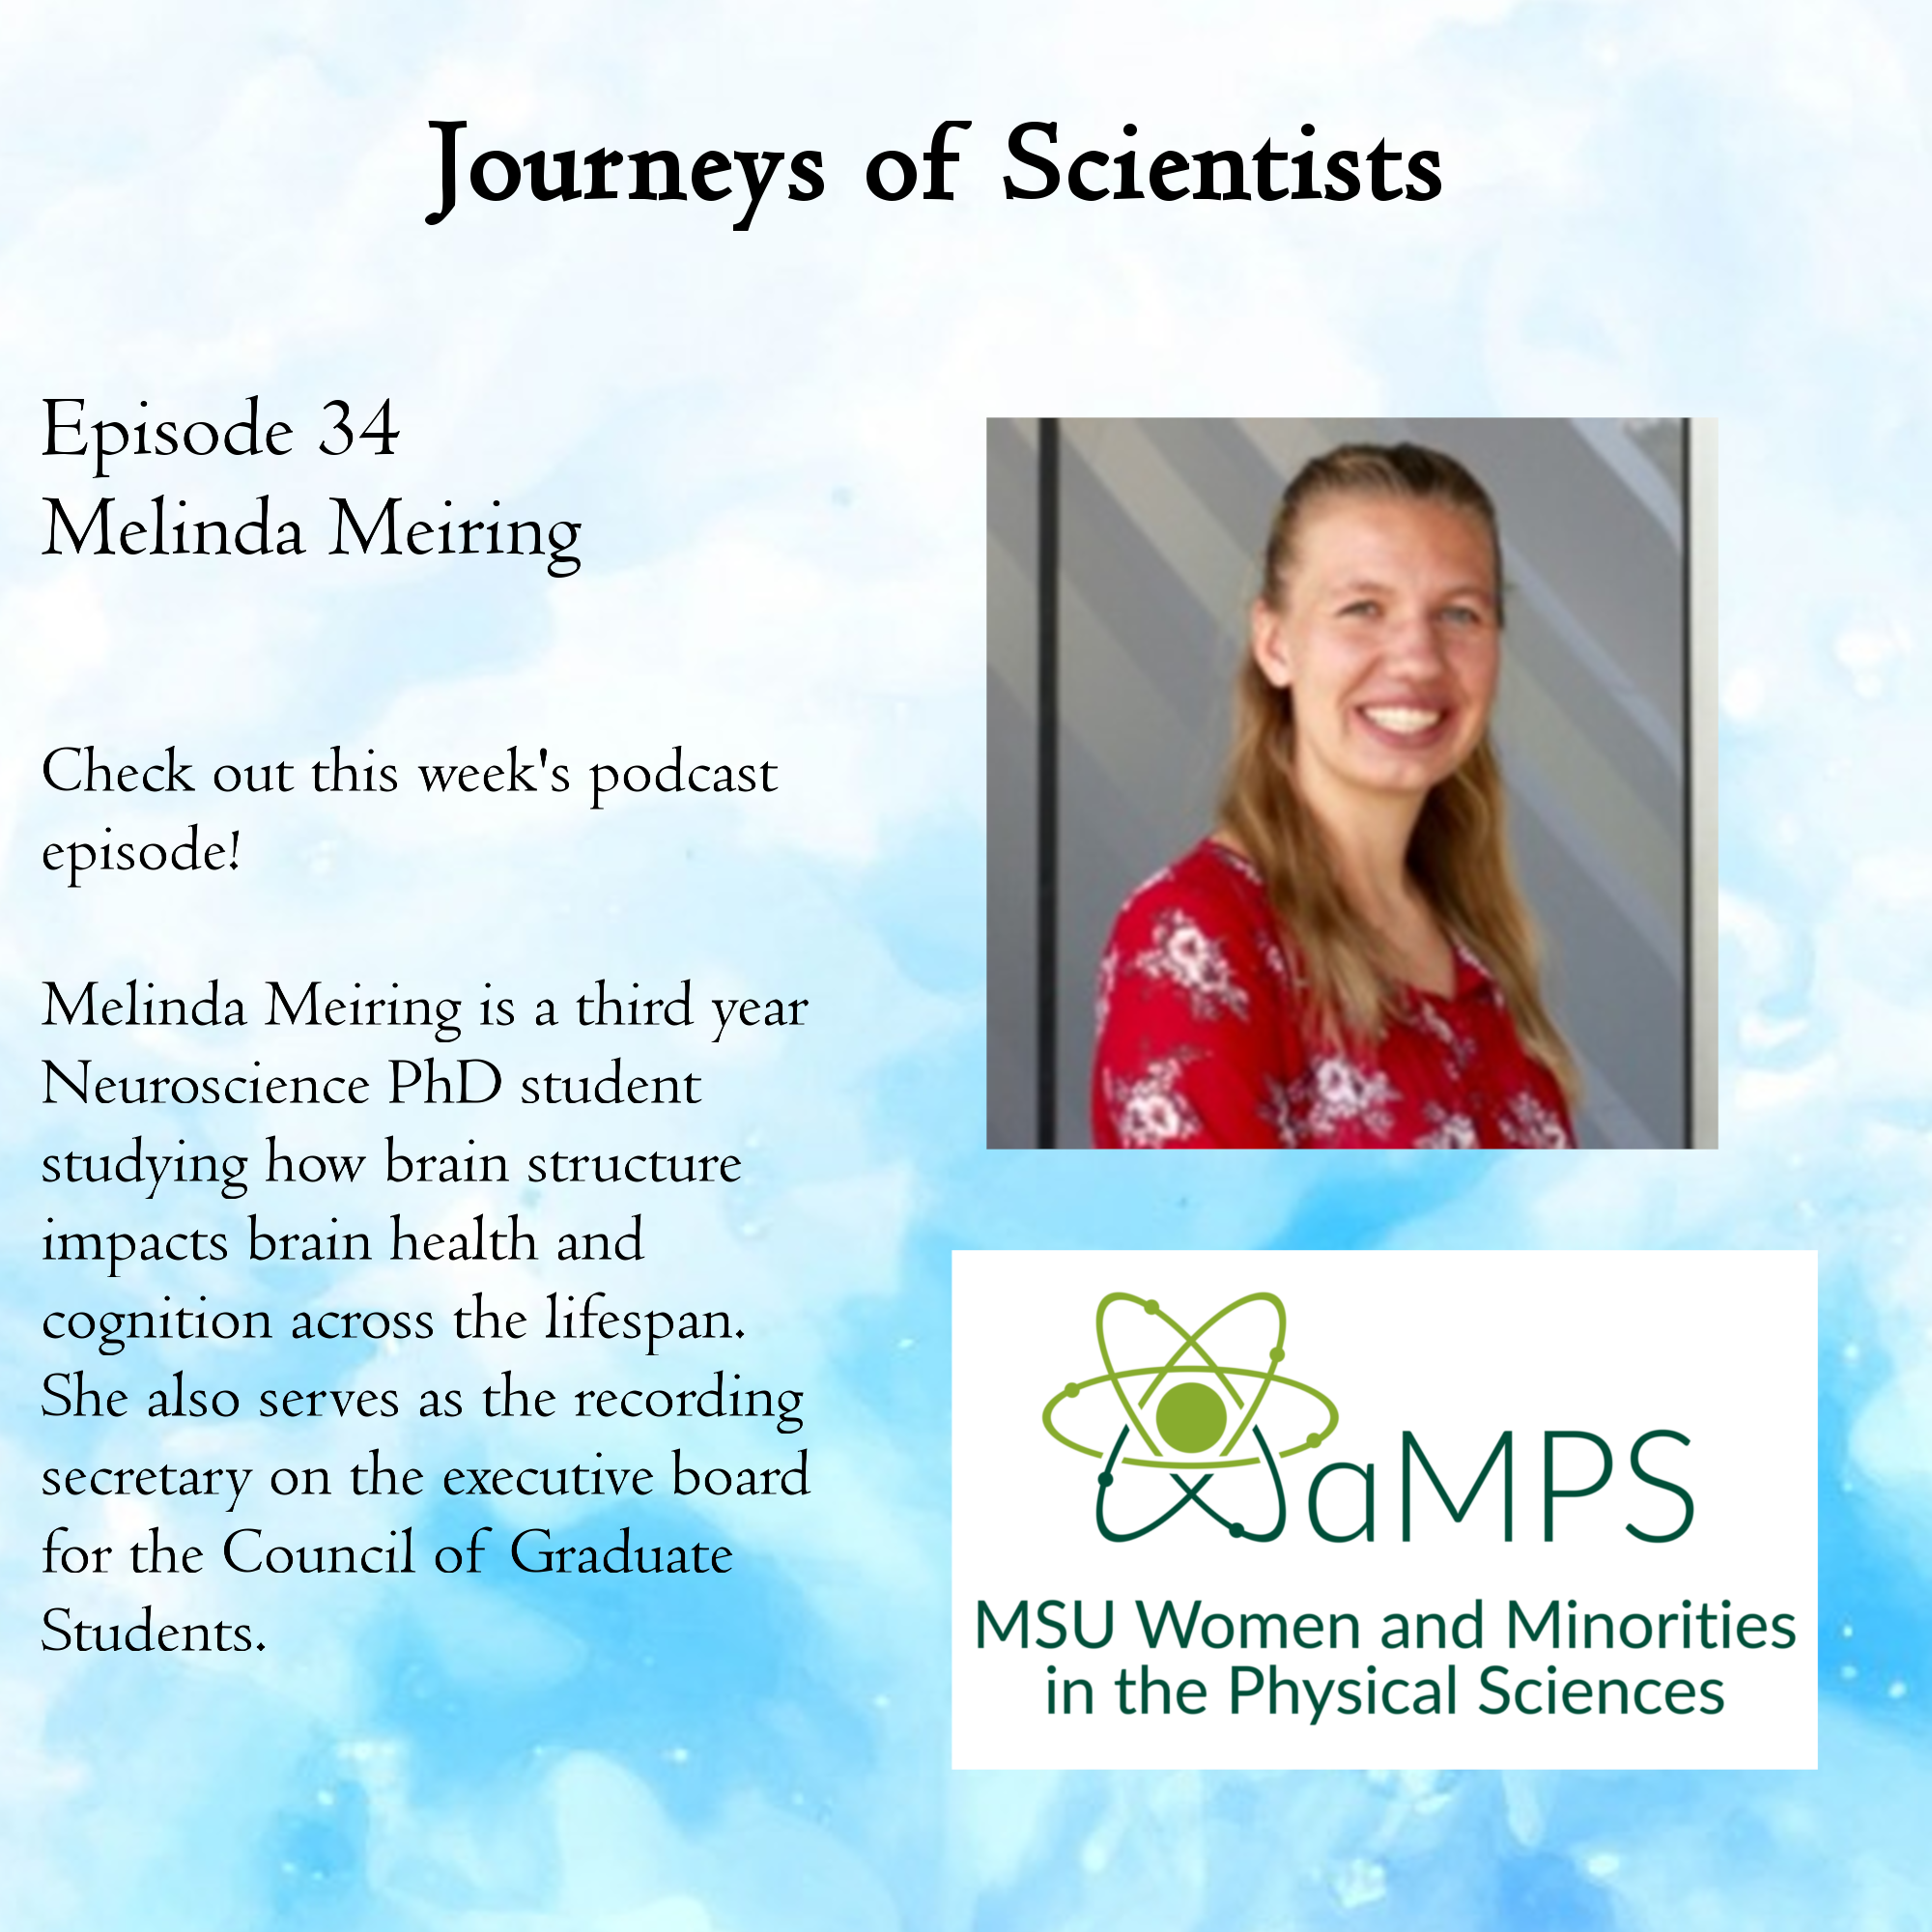 Melinda Meiring is a third year Neuroscience PhD student studying how brain structure impacts brain health and cognition across the lifespan. She also serves as the recording secretary on the executive board for the Council of Graduate Students.